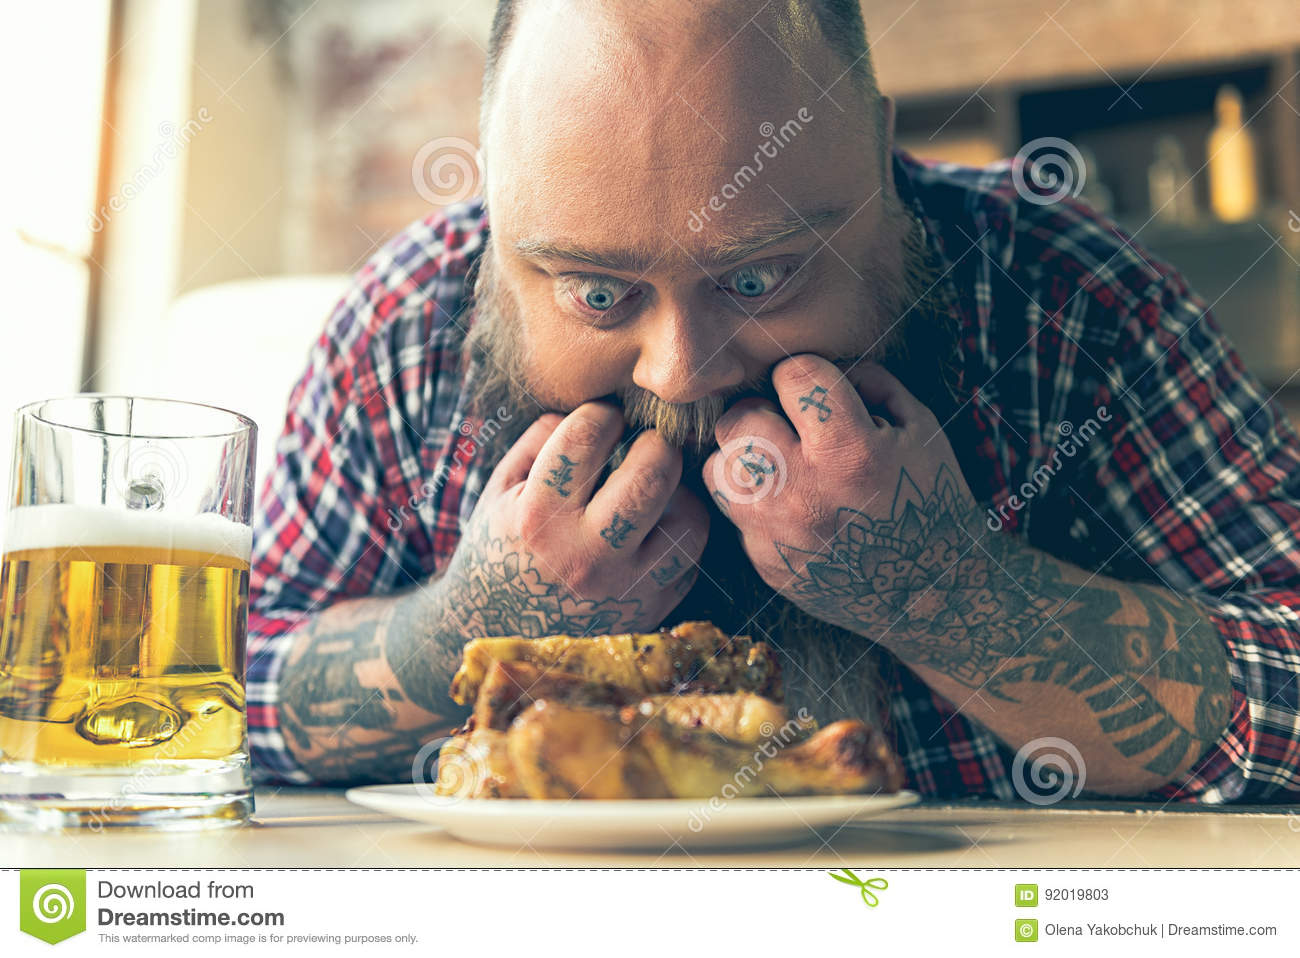 Fat man staring at meat with appetite